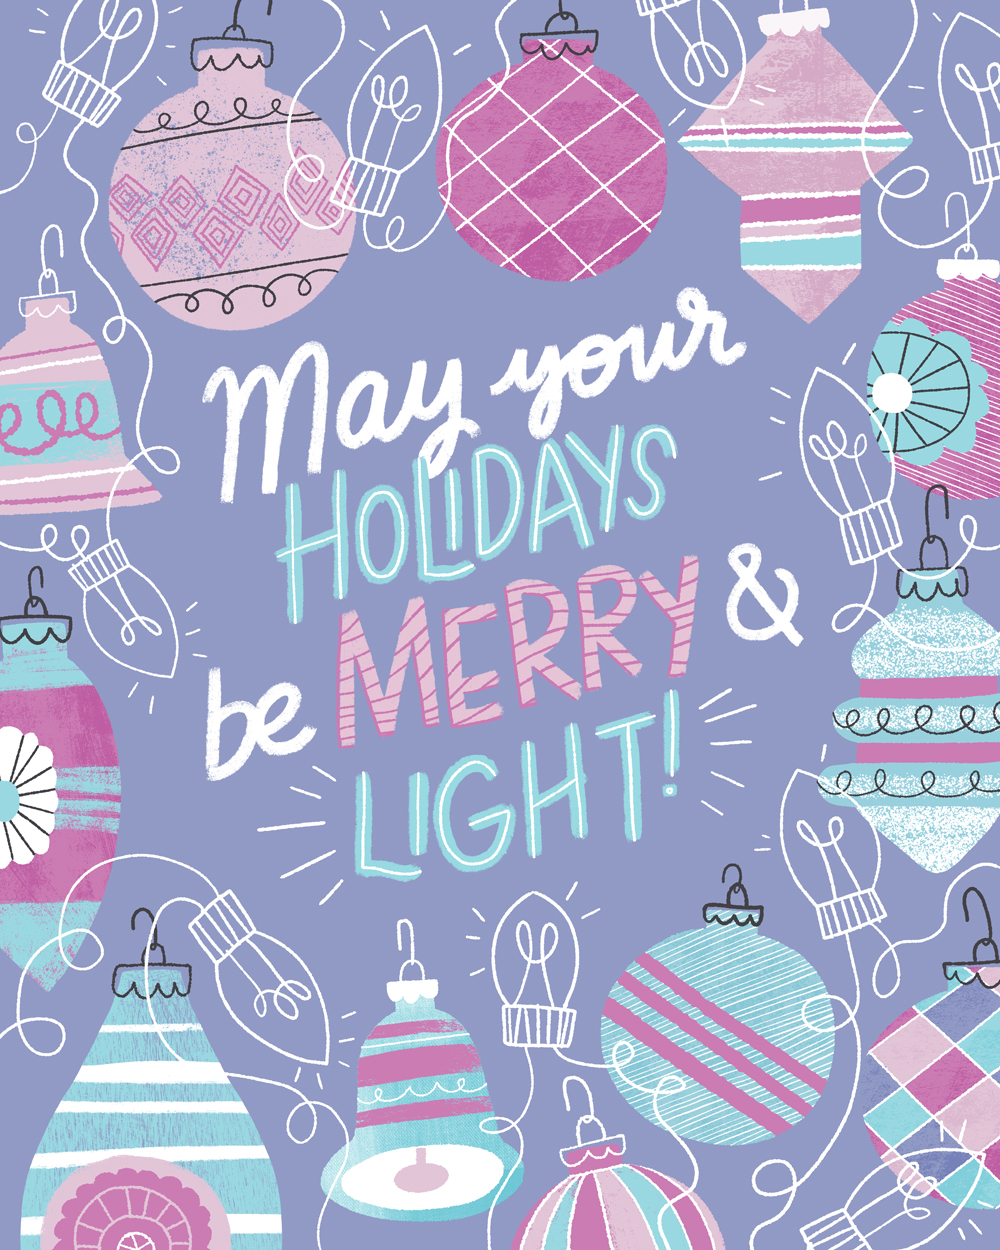 Merry and Light